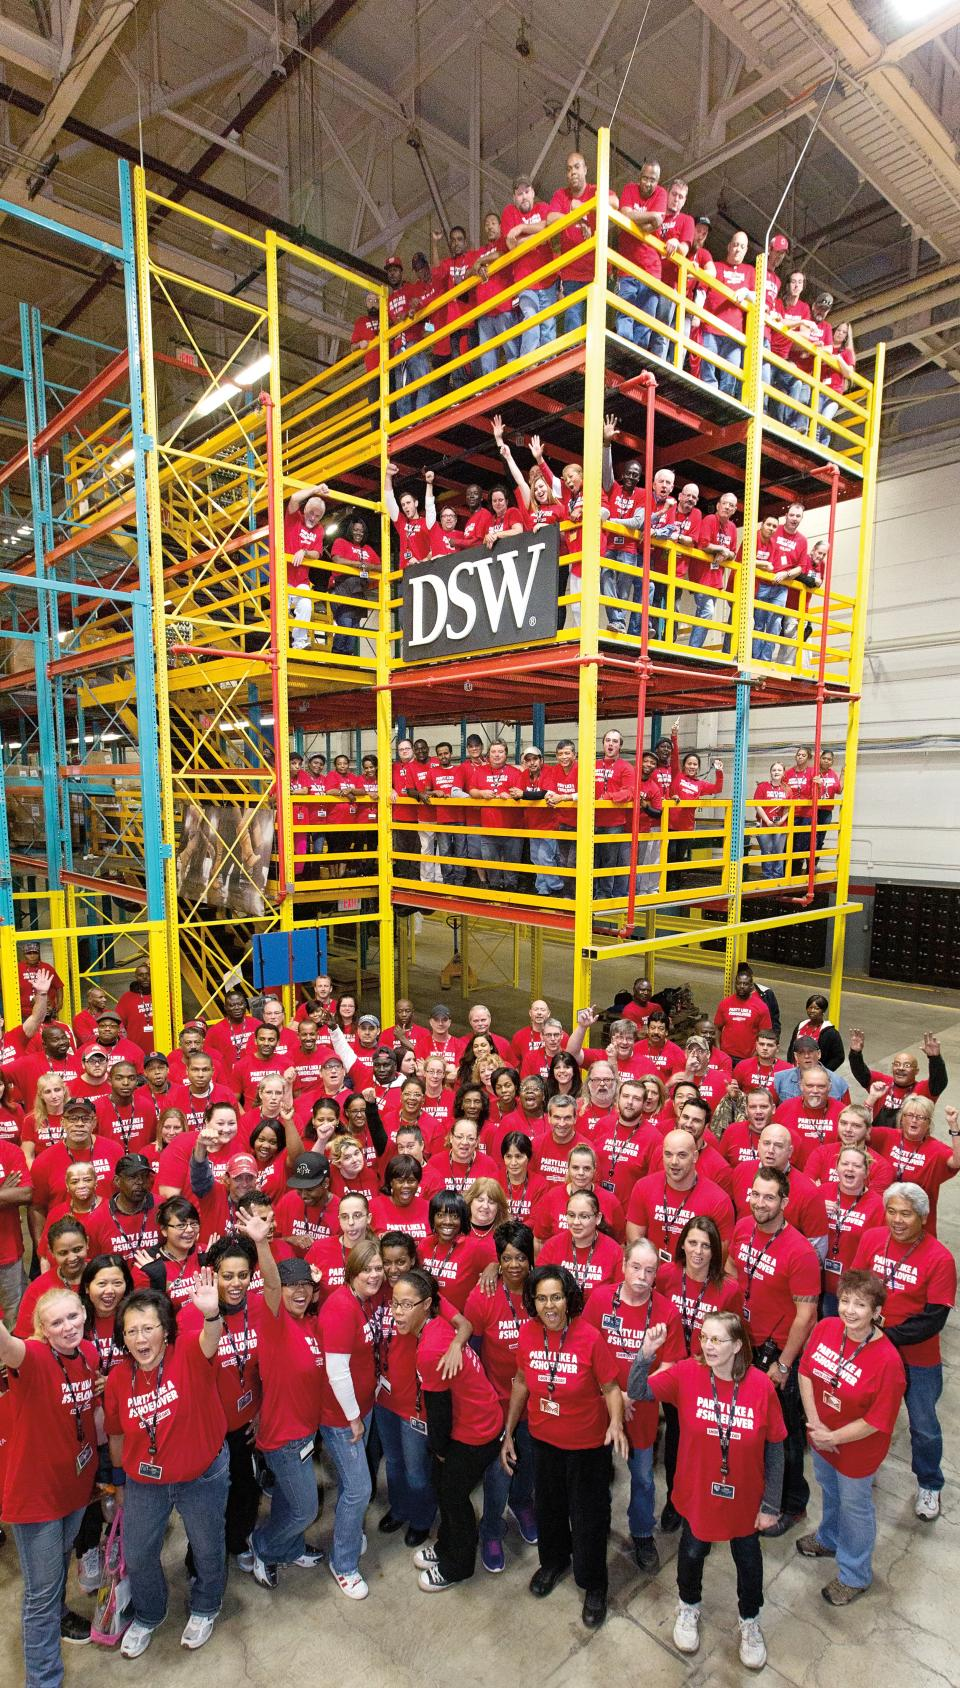 Dsw - The Customer Is Always First And We Want Them To Feel Like The People That Work At Dsw Are Shoe Lovers And We Know Who They Are As Fellow Shoe Lovers